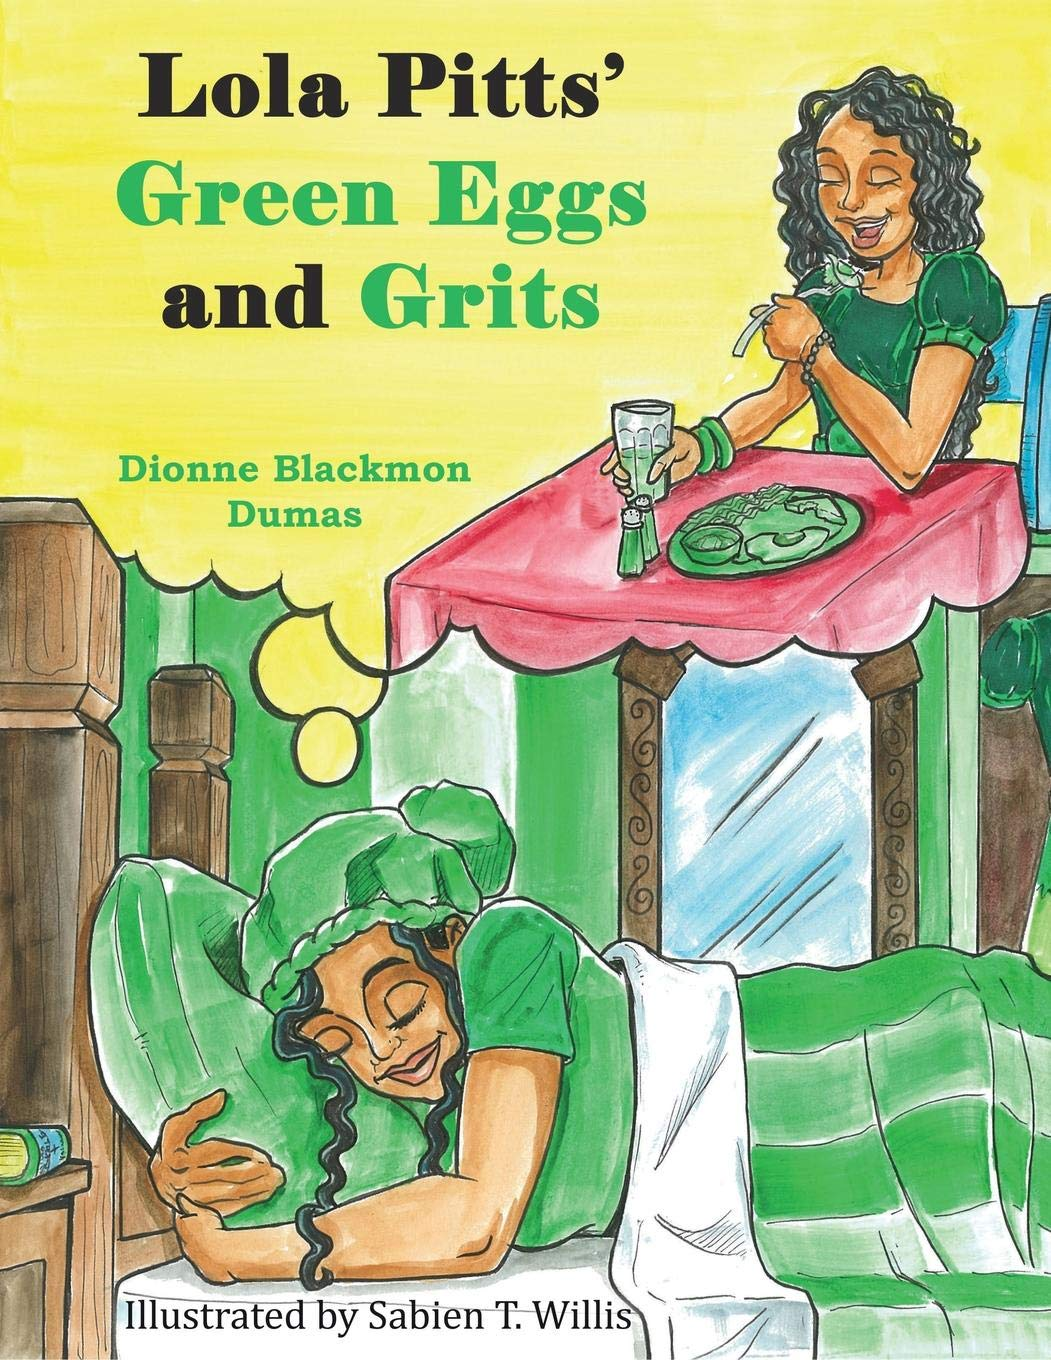 Lola Pitts' Green Eggs and Grits